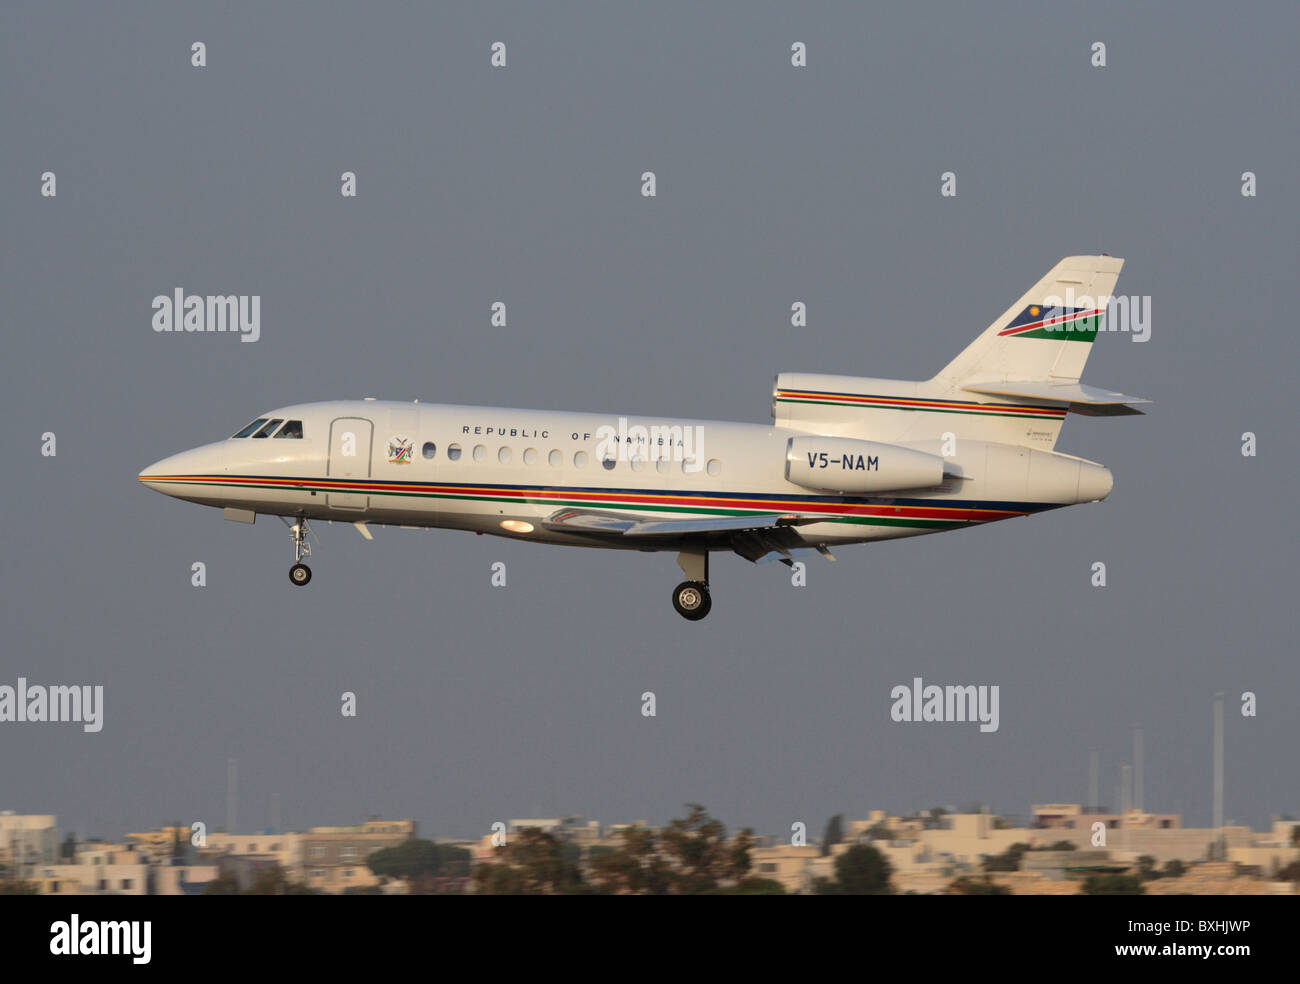 Dassault Falcon 900 business jet operated by the Government of Namibia - Stock Image